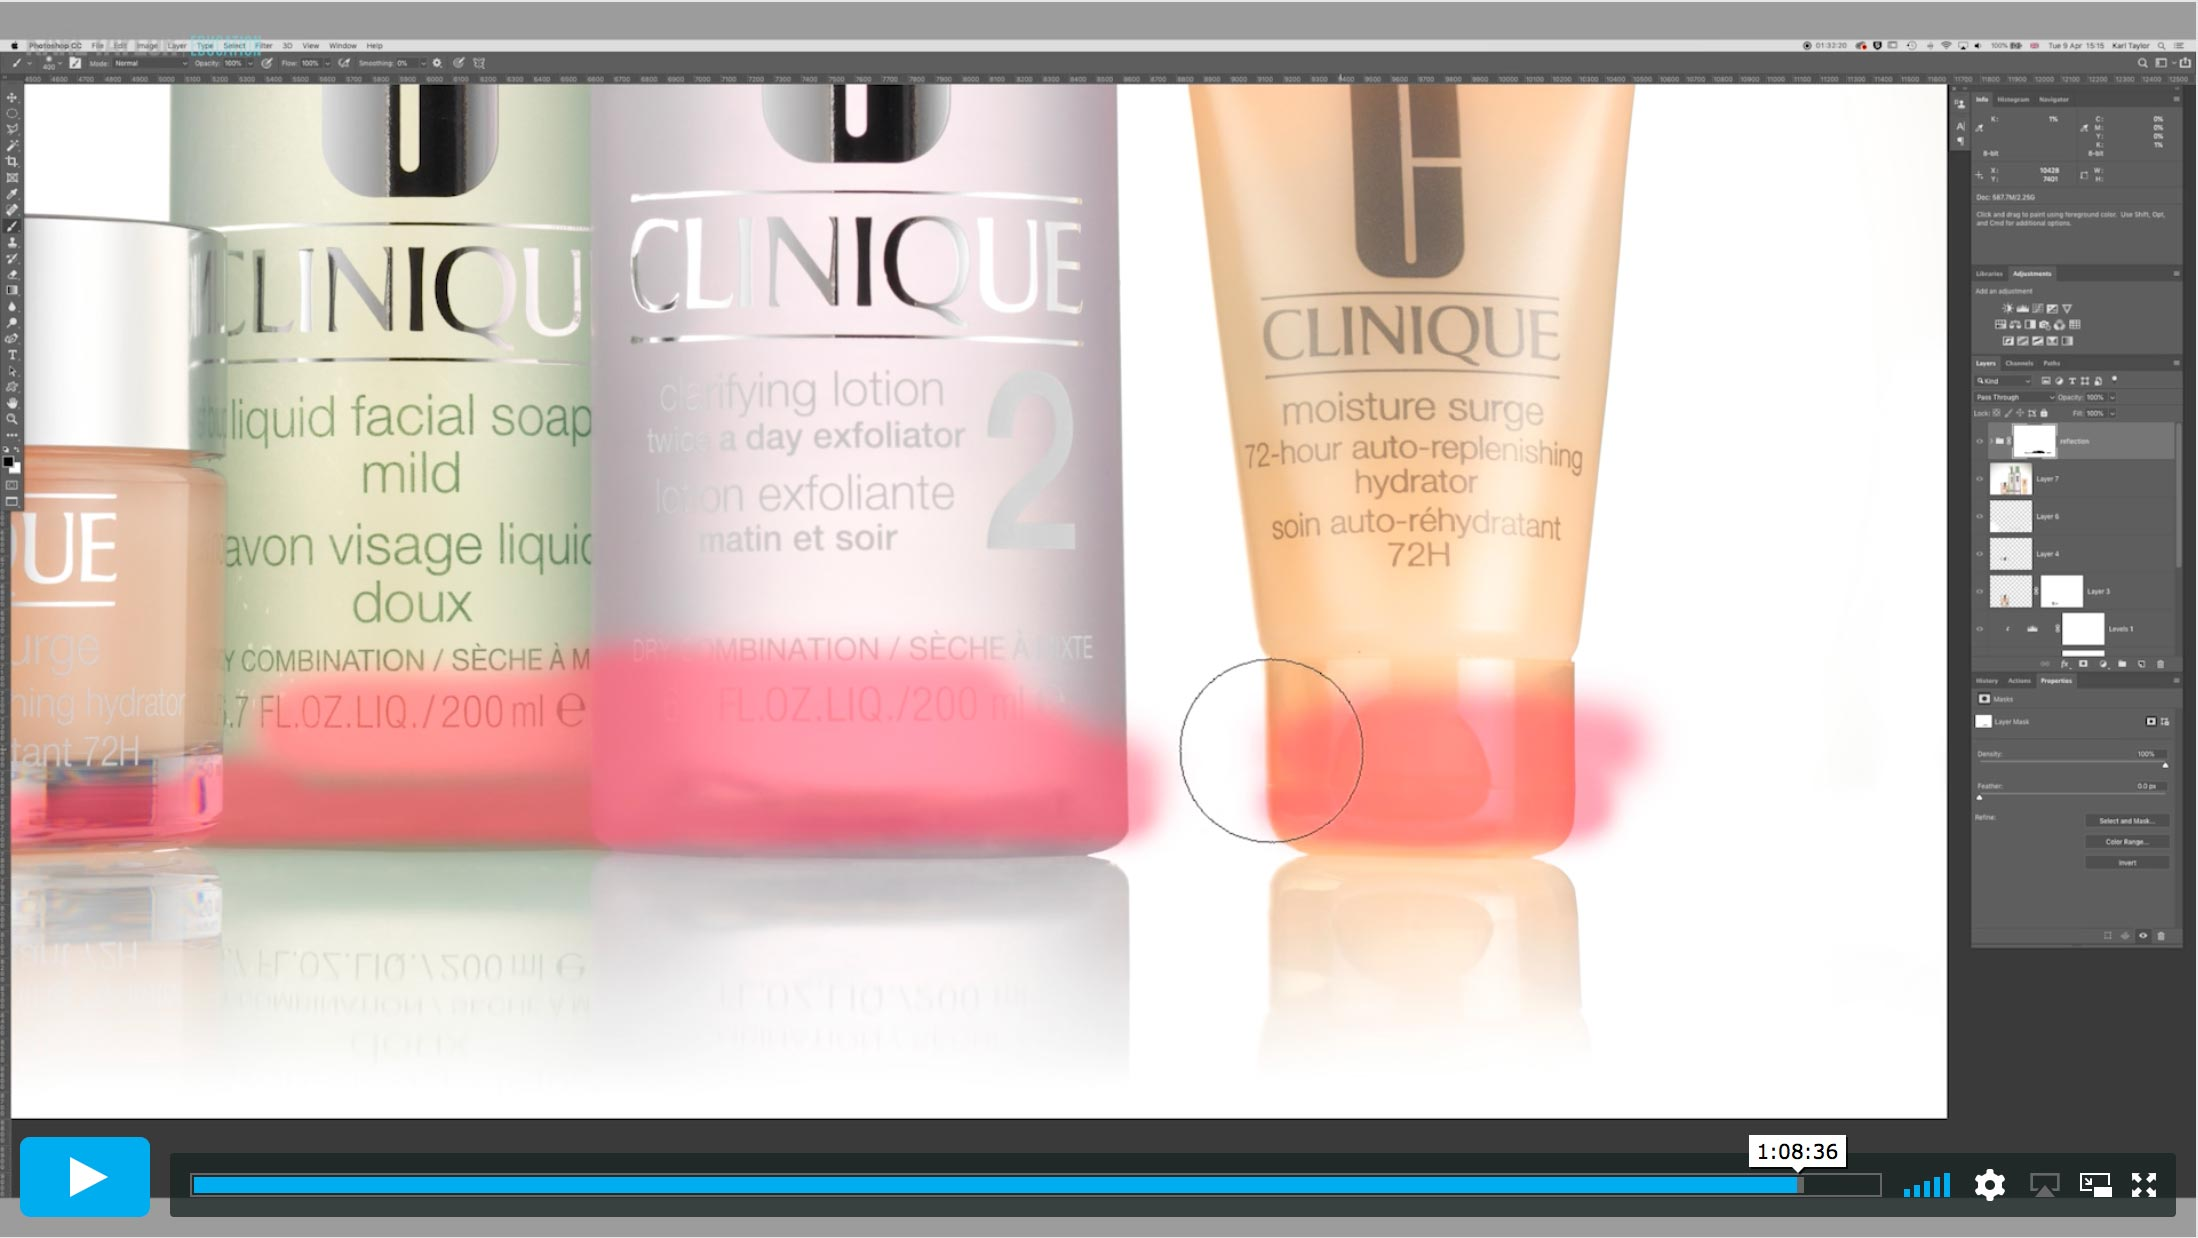 Clinique shoot post production 1: Initial Compositing & Basic Cleaning